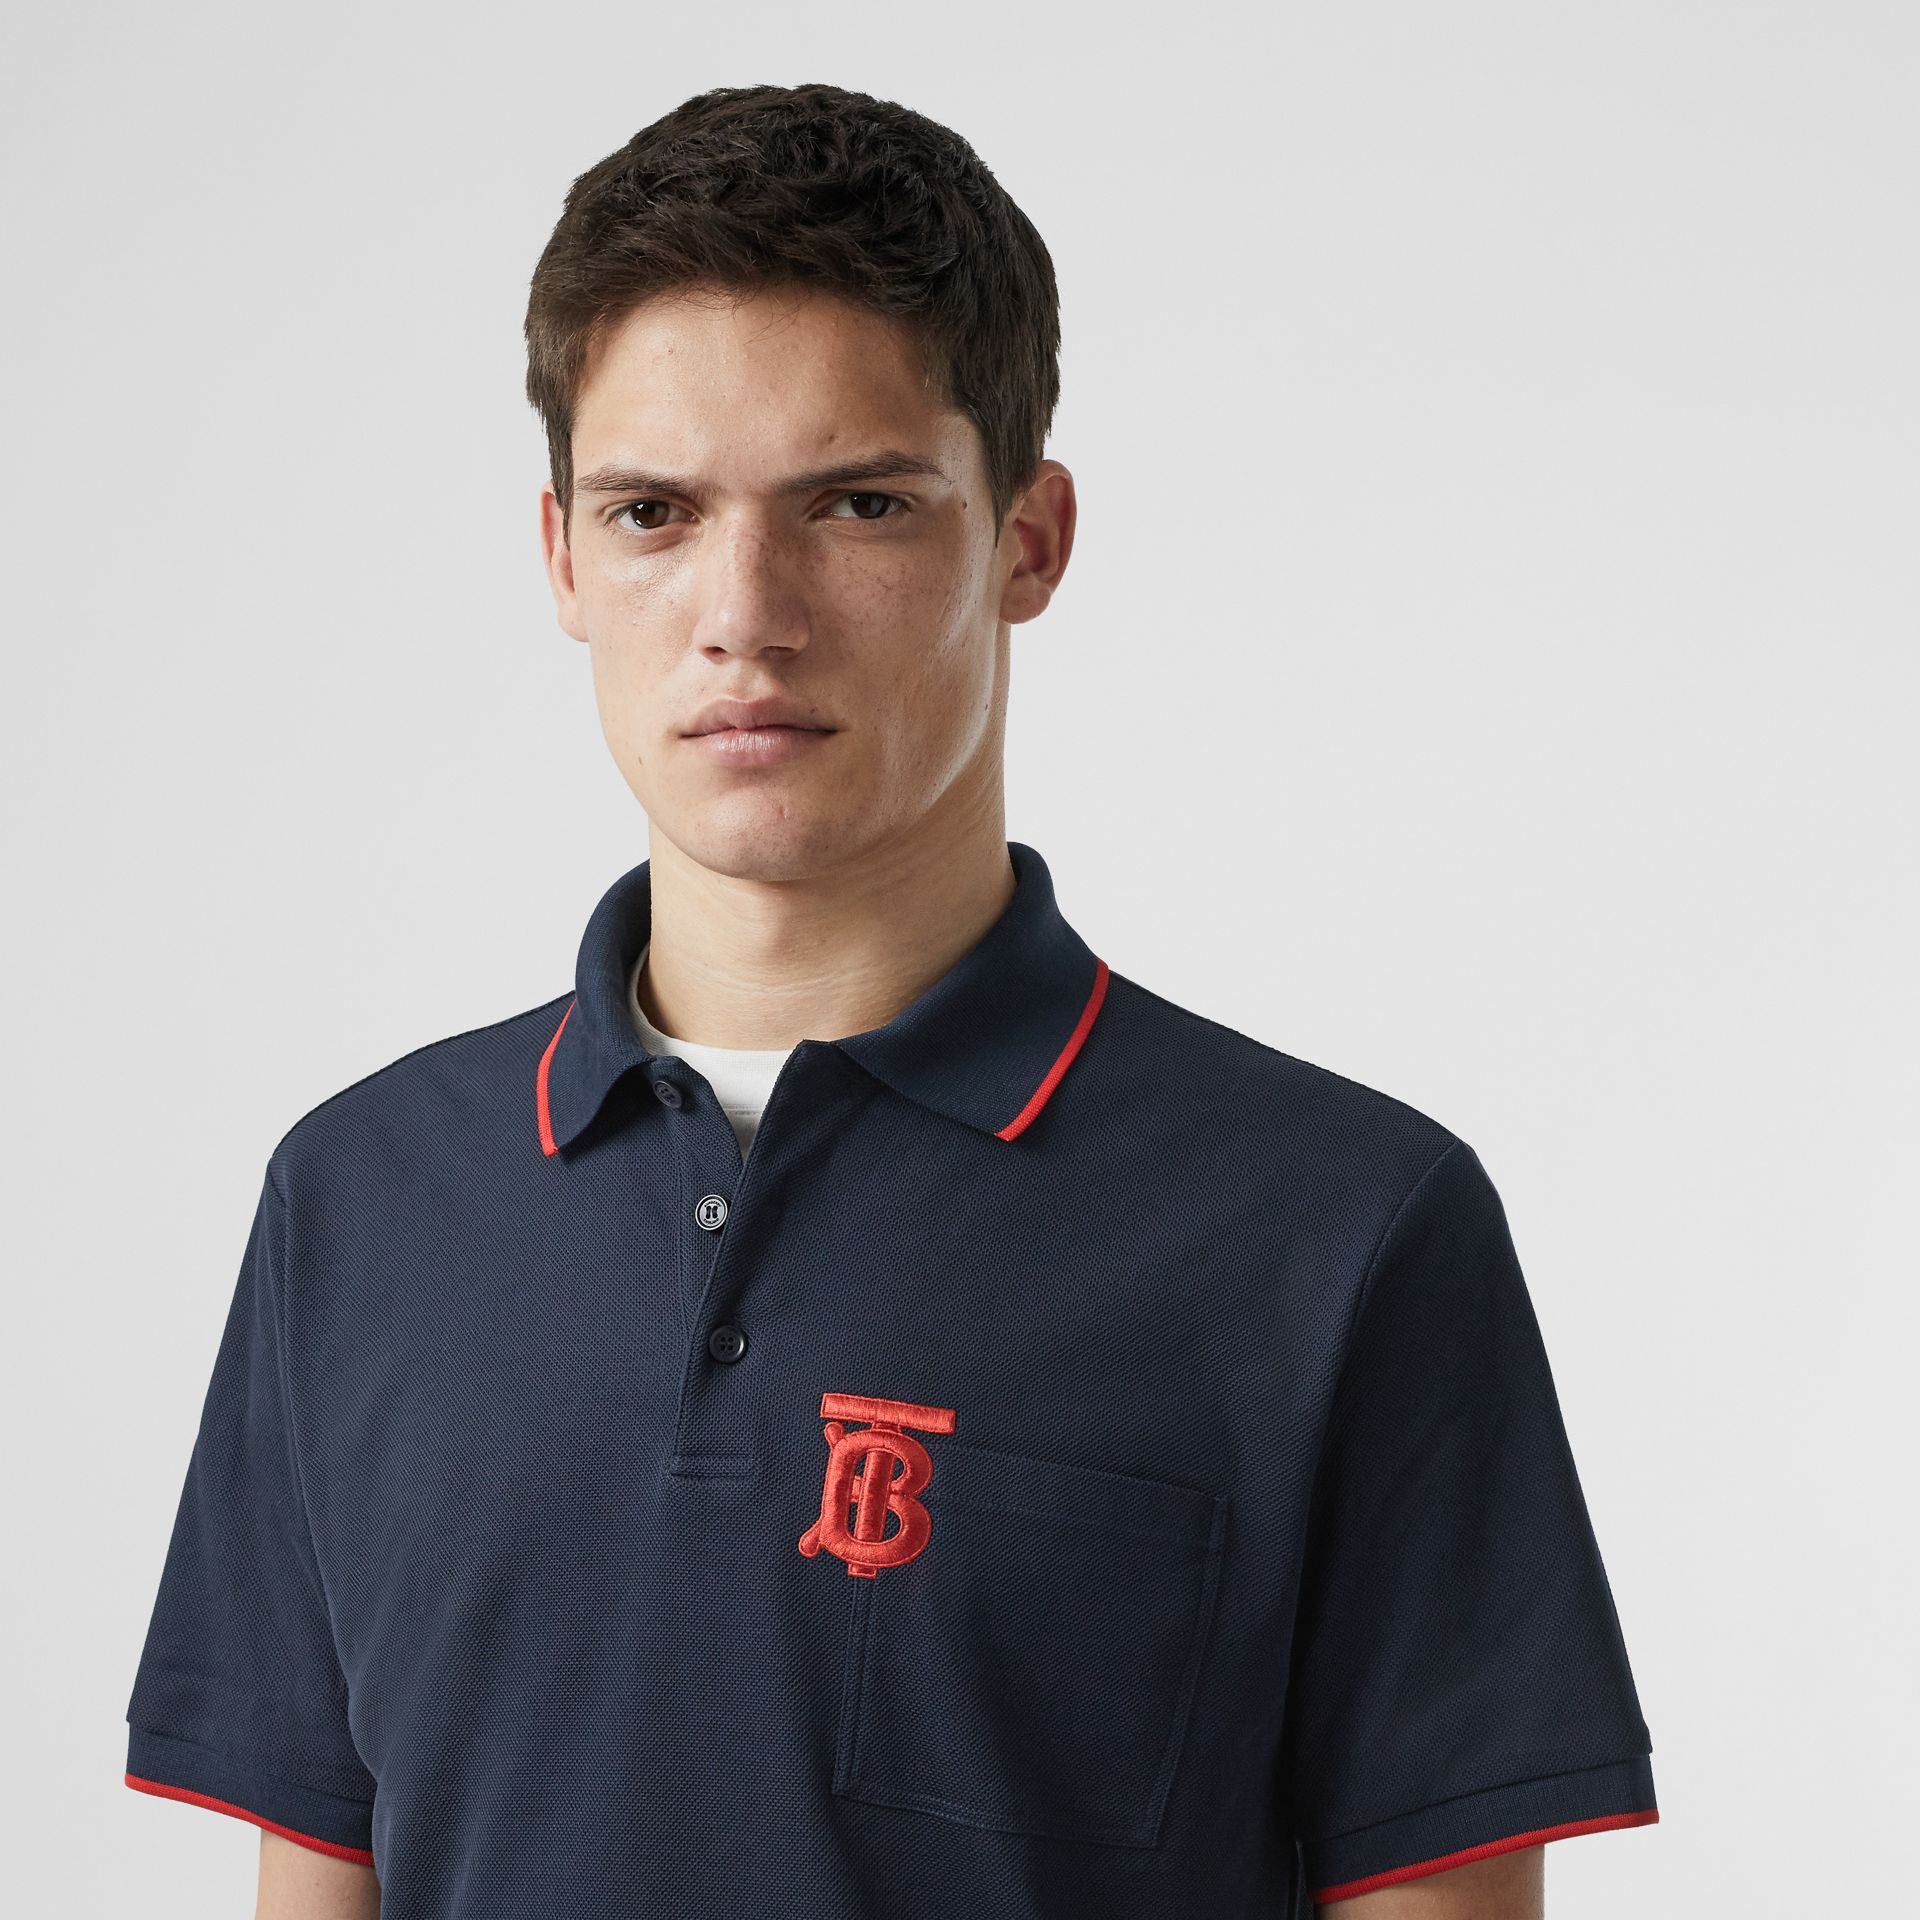 Monogram Motif Tipped Cotton Piqué Polo Shirt in Navy - Men | Burberry - gallery image 1